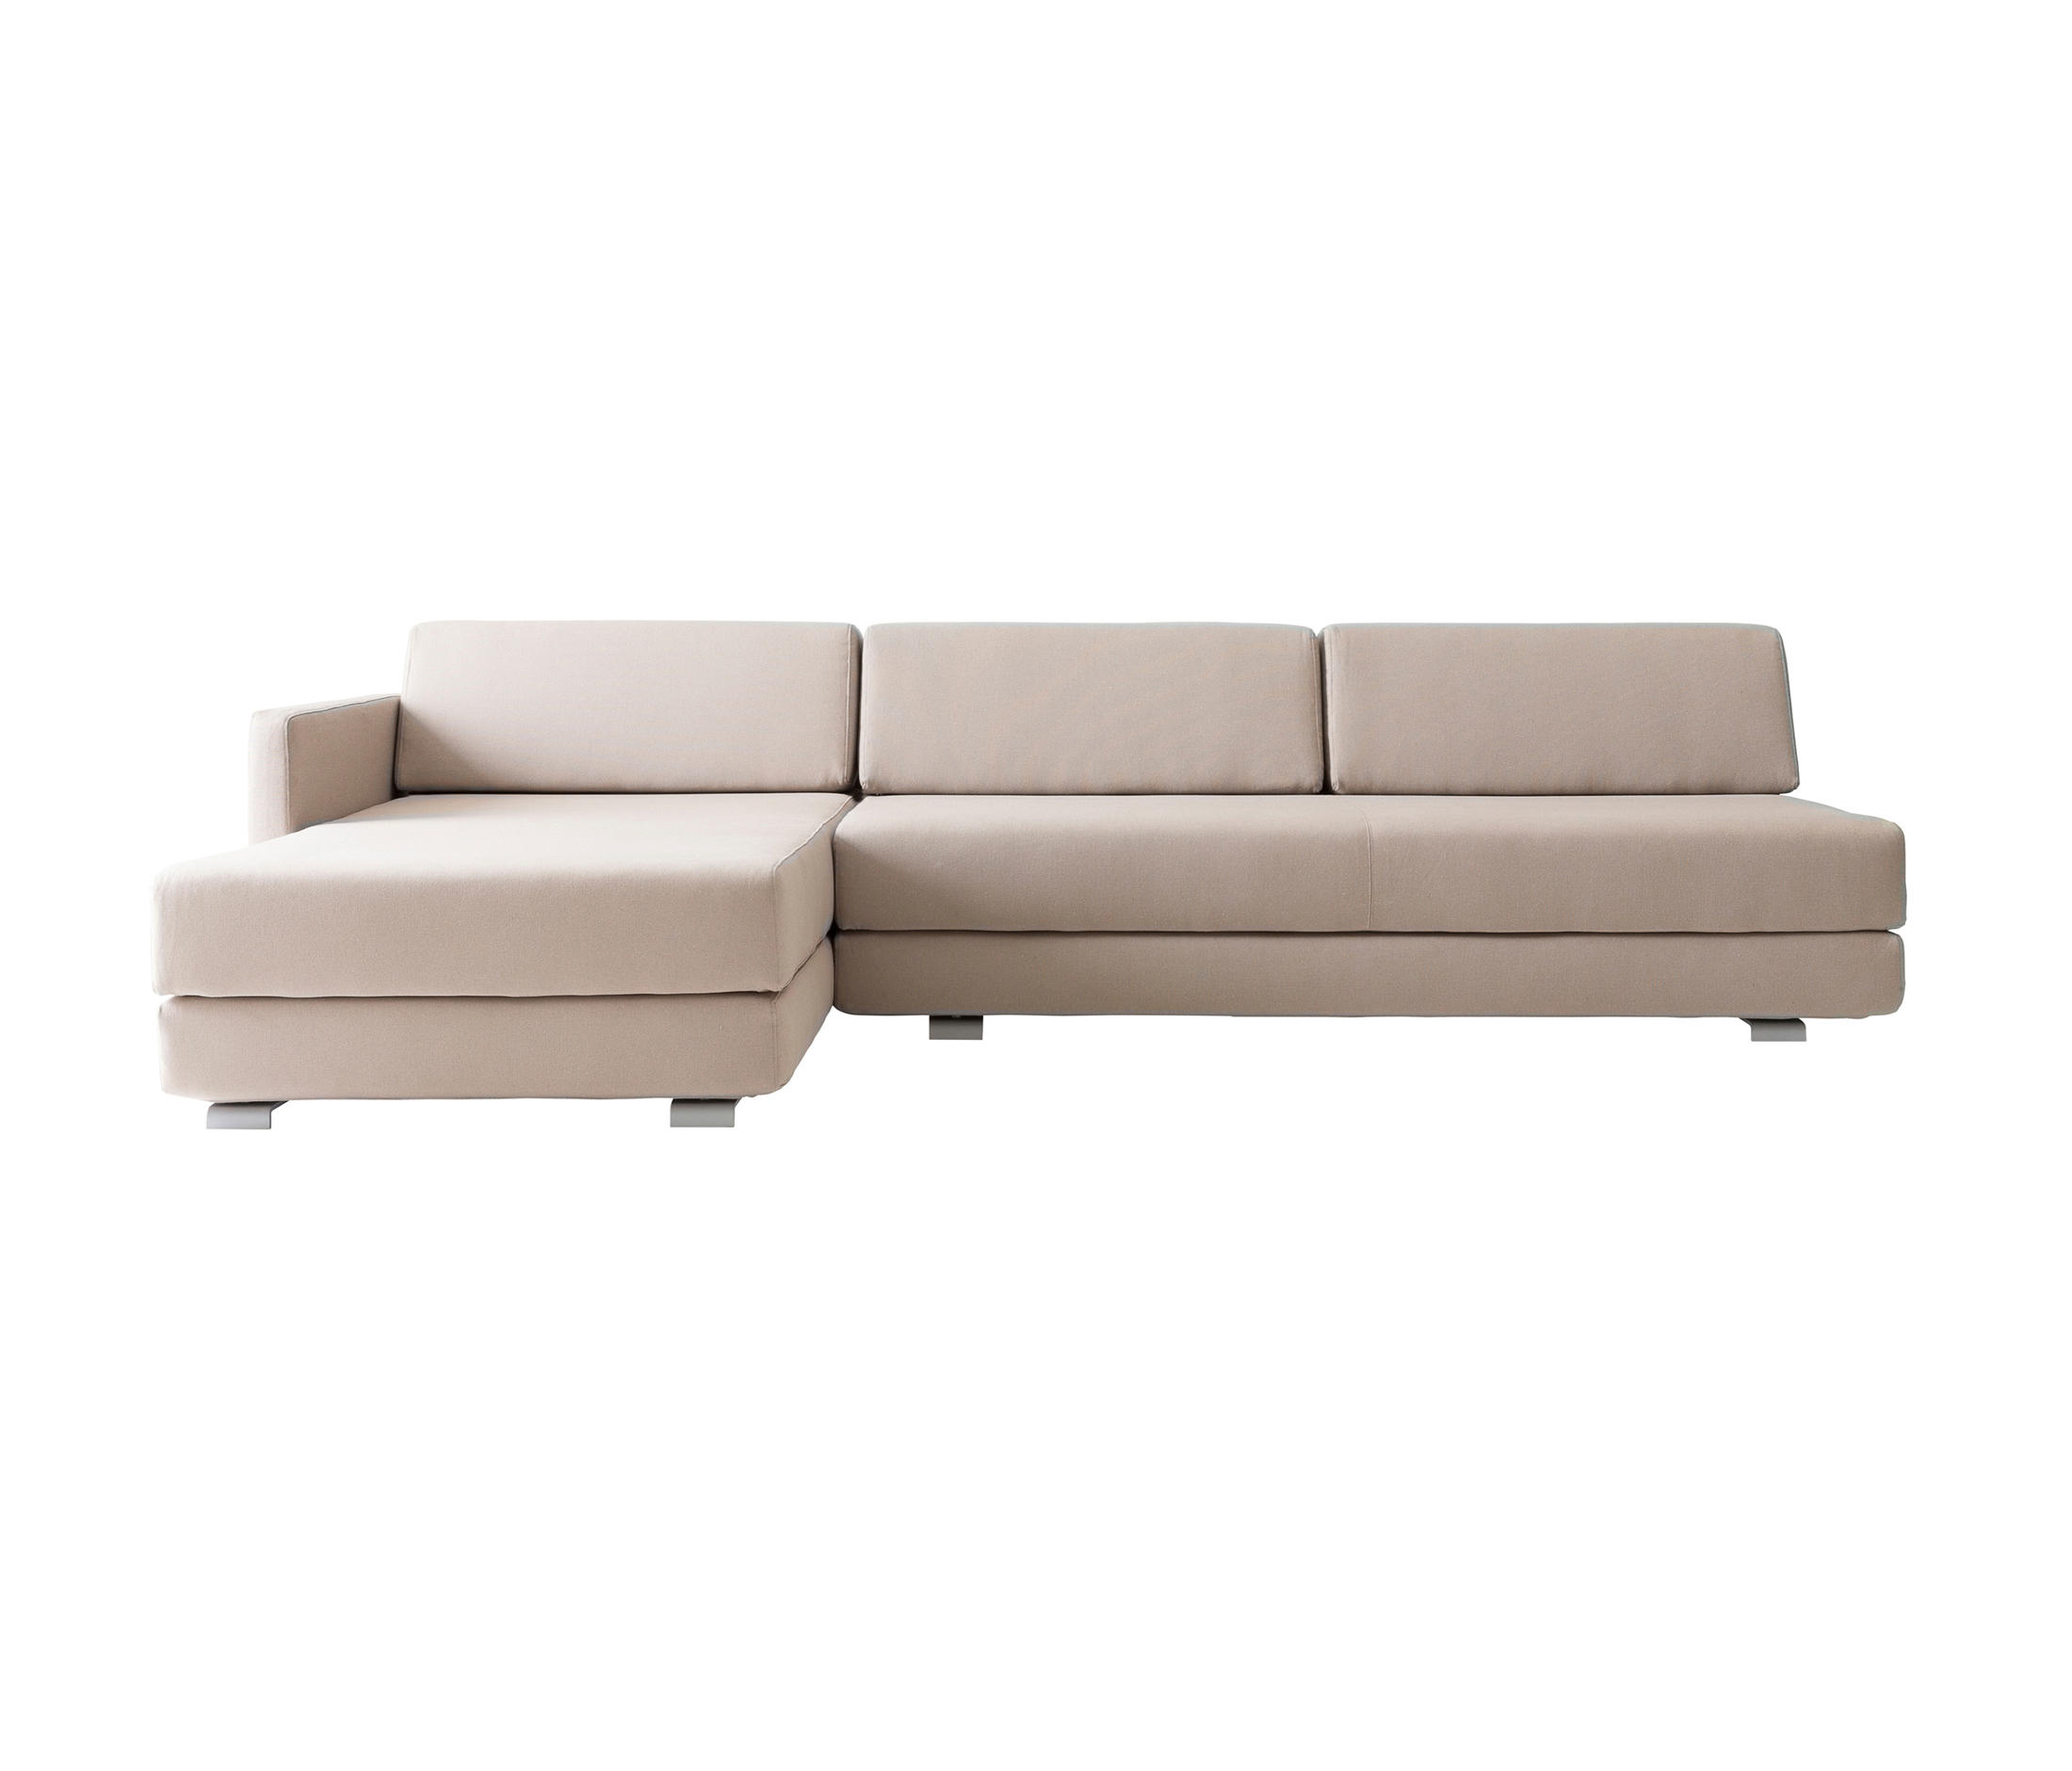 lounge sofa by softline a/s | sofas ... YHLMNMH